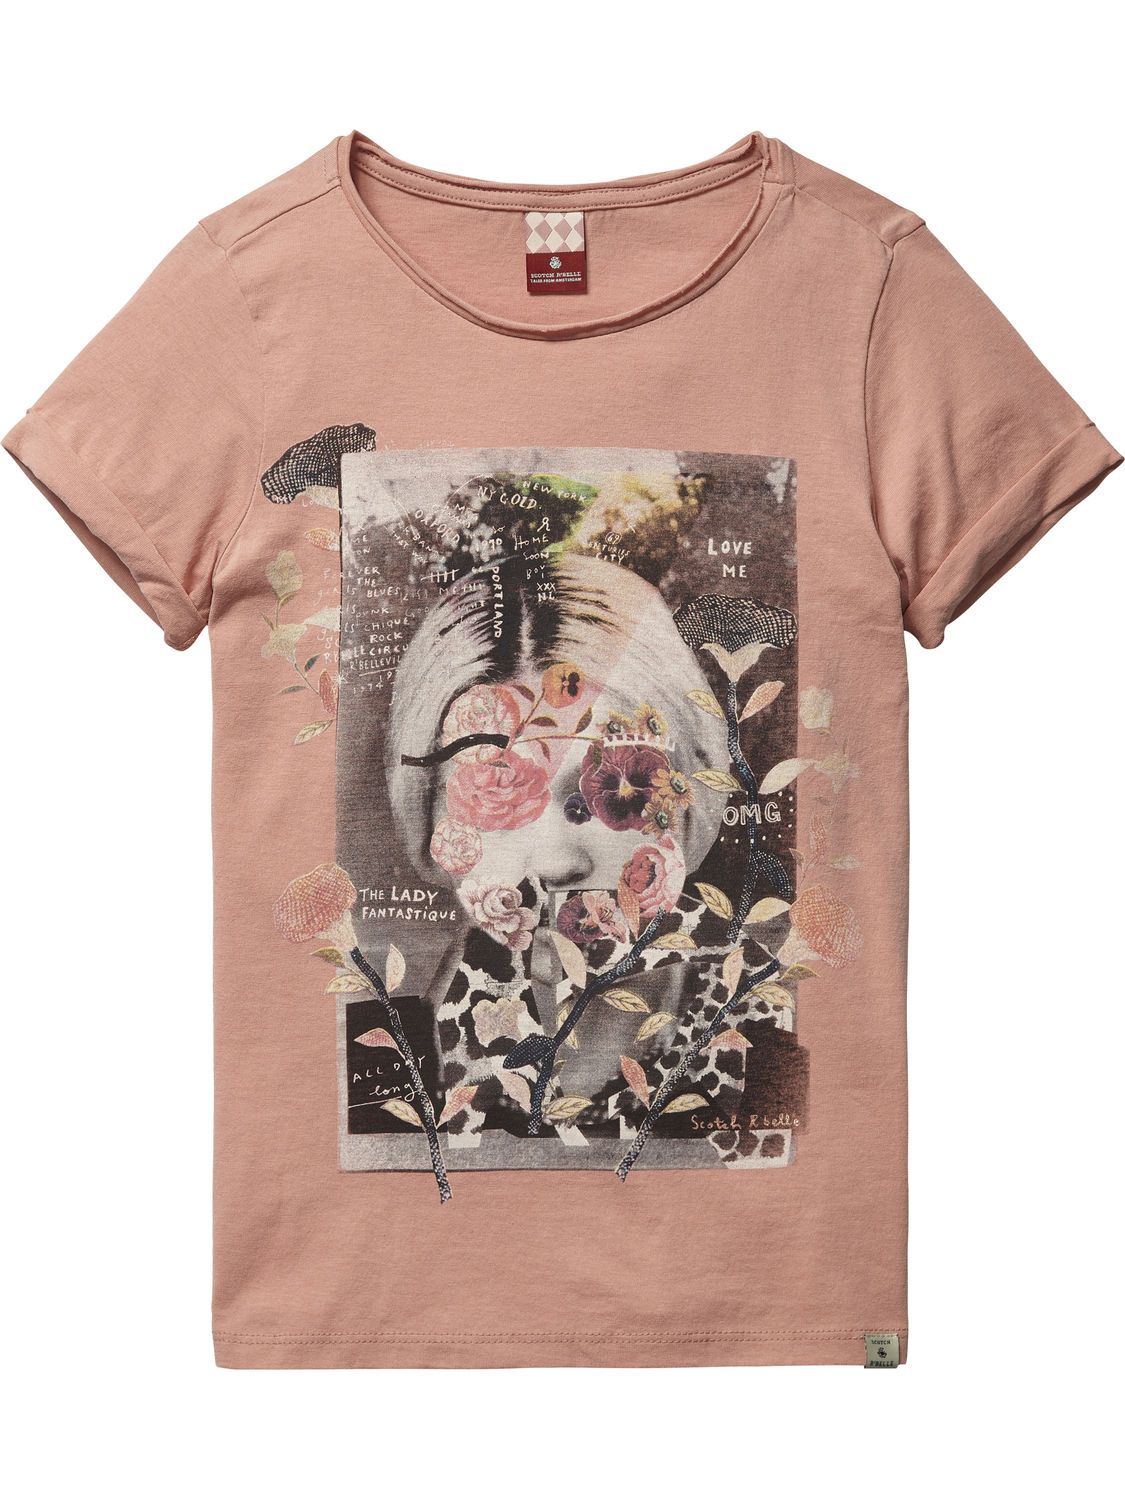 Womens Loose Fit Tee with Various Allover Prints T-Shirt, Blue Scotch & Soda